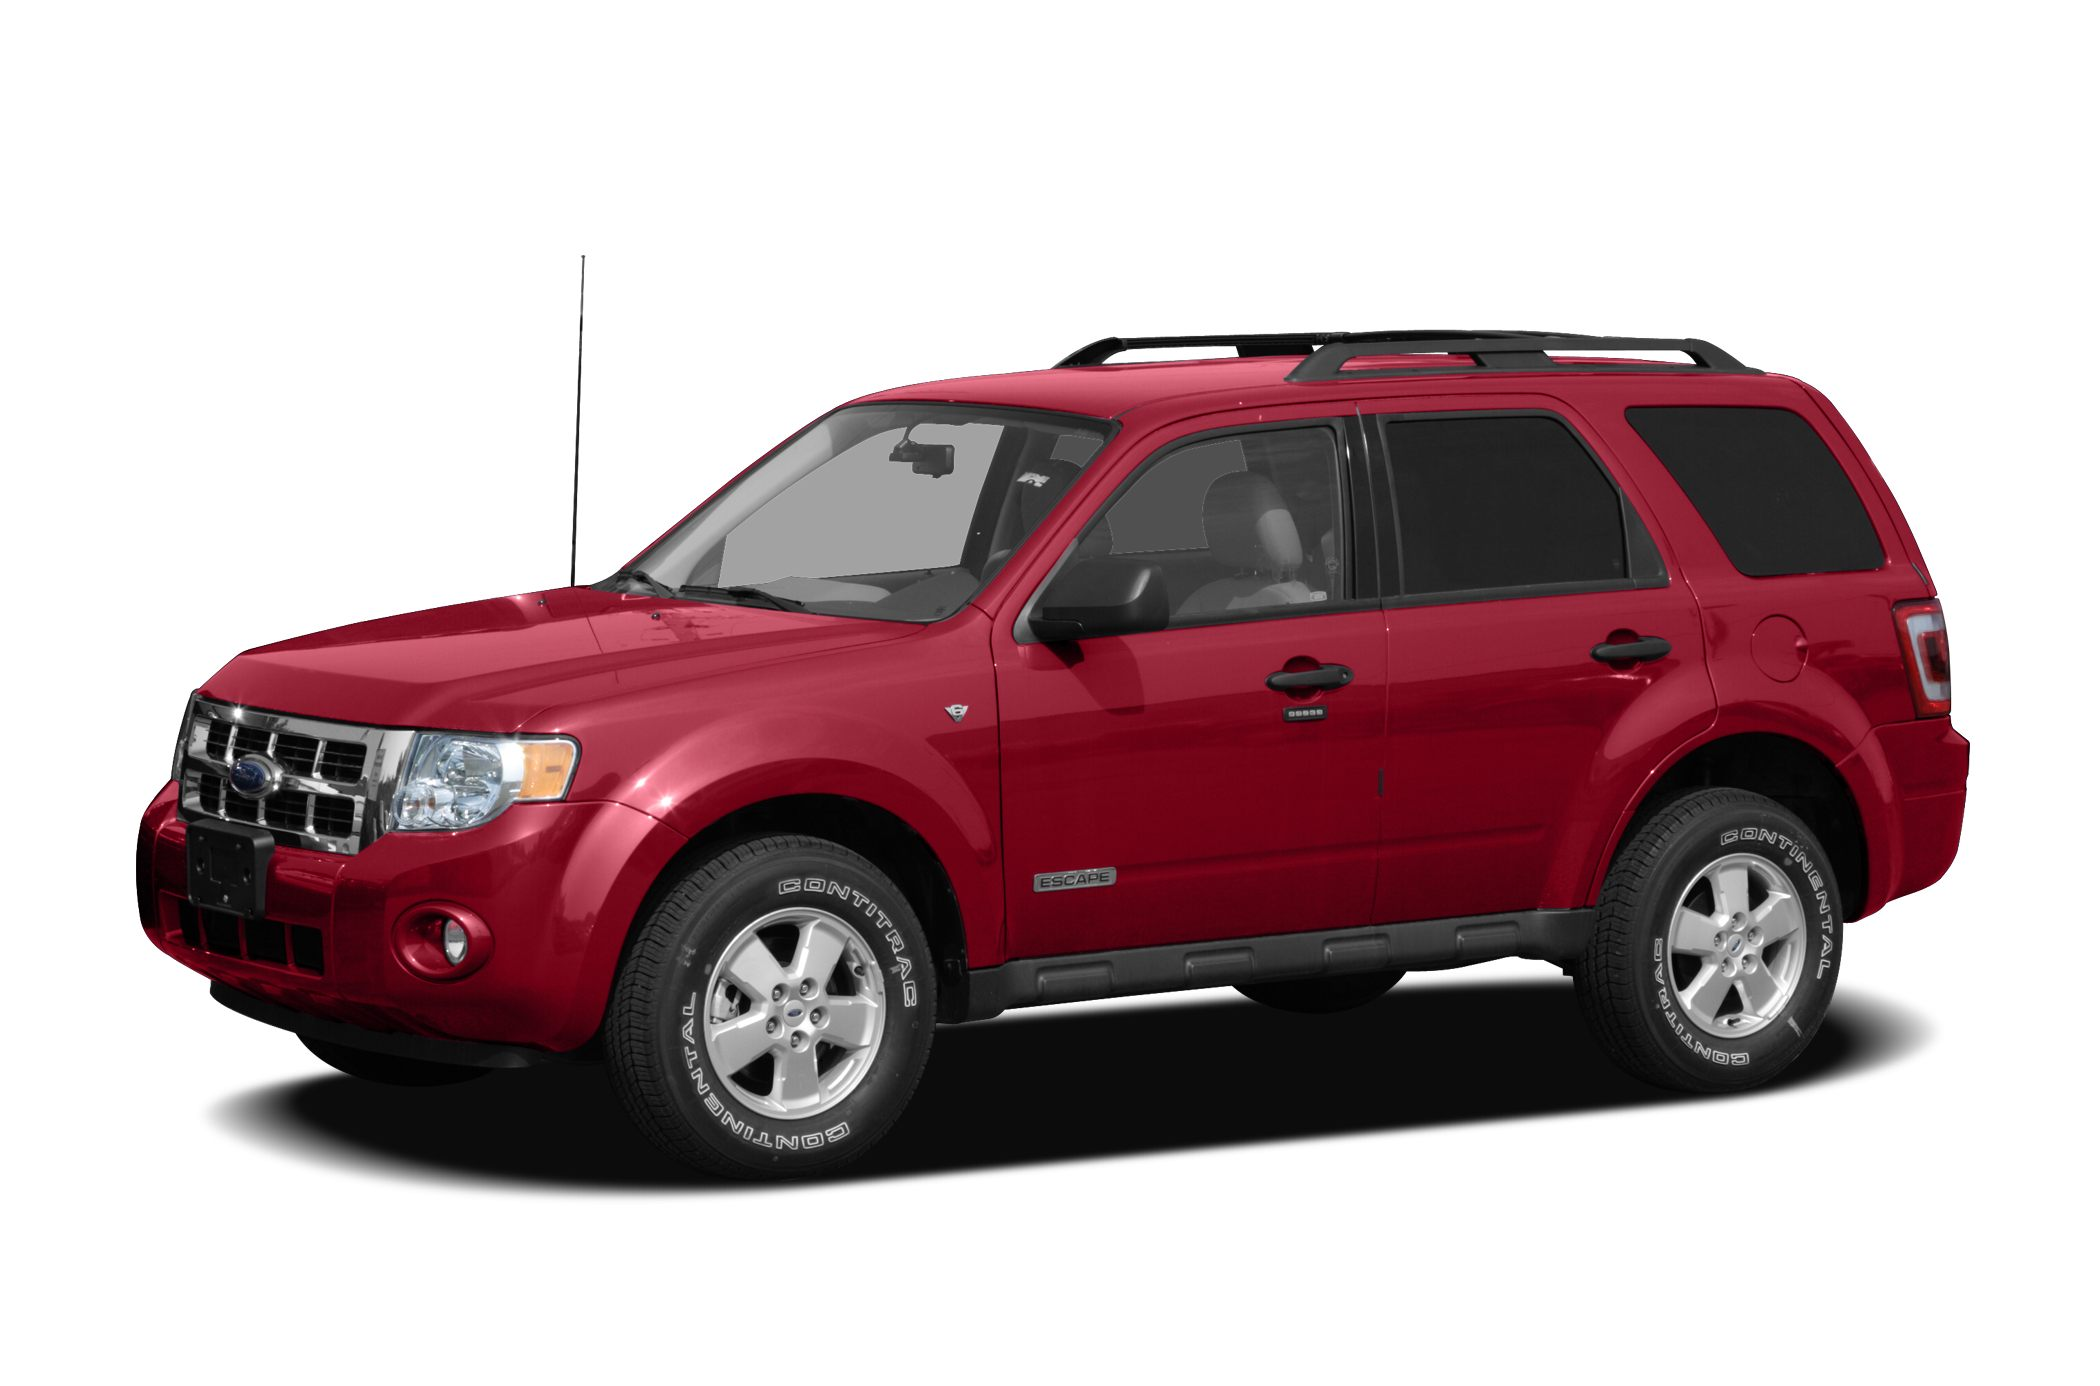 2008 Ford Escape XLS SUV for sale in Tallmadge for $7,885 with 120,135 miles.